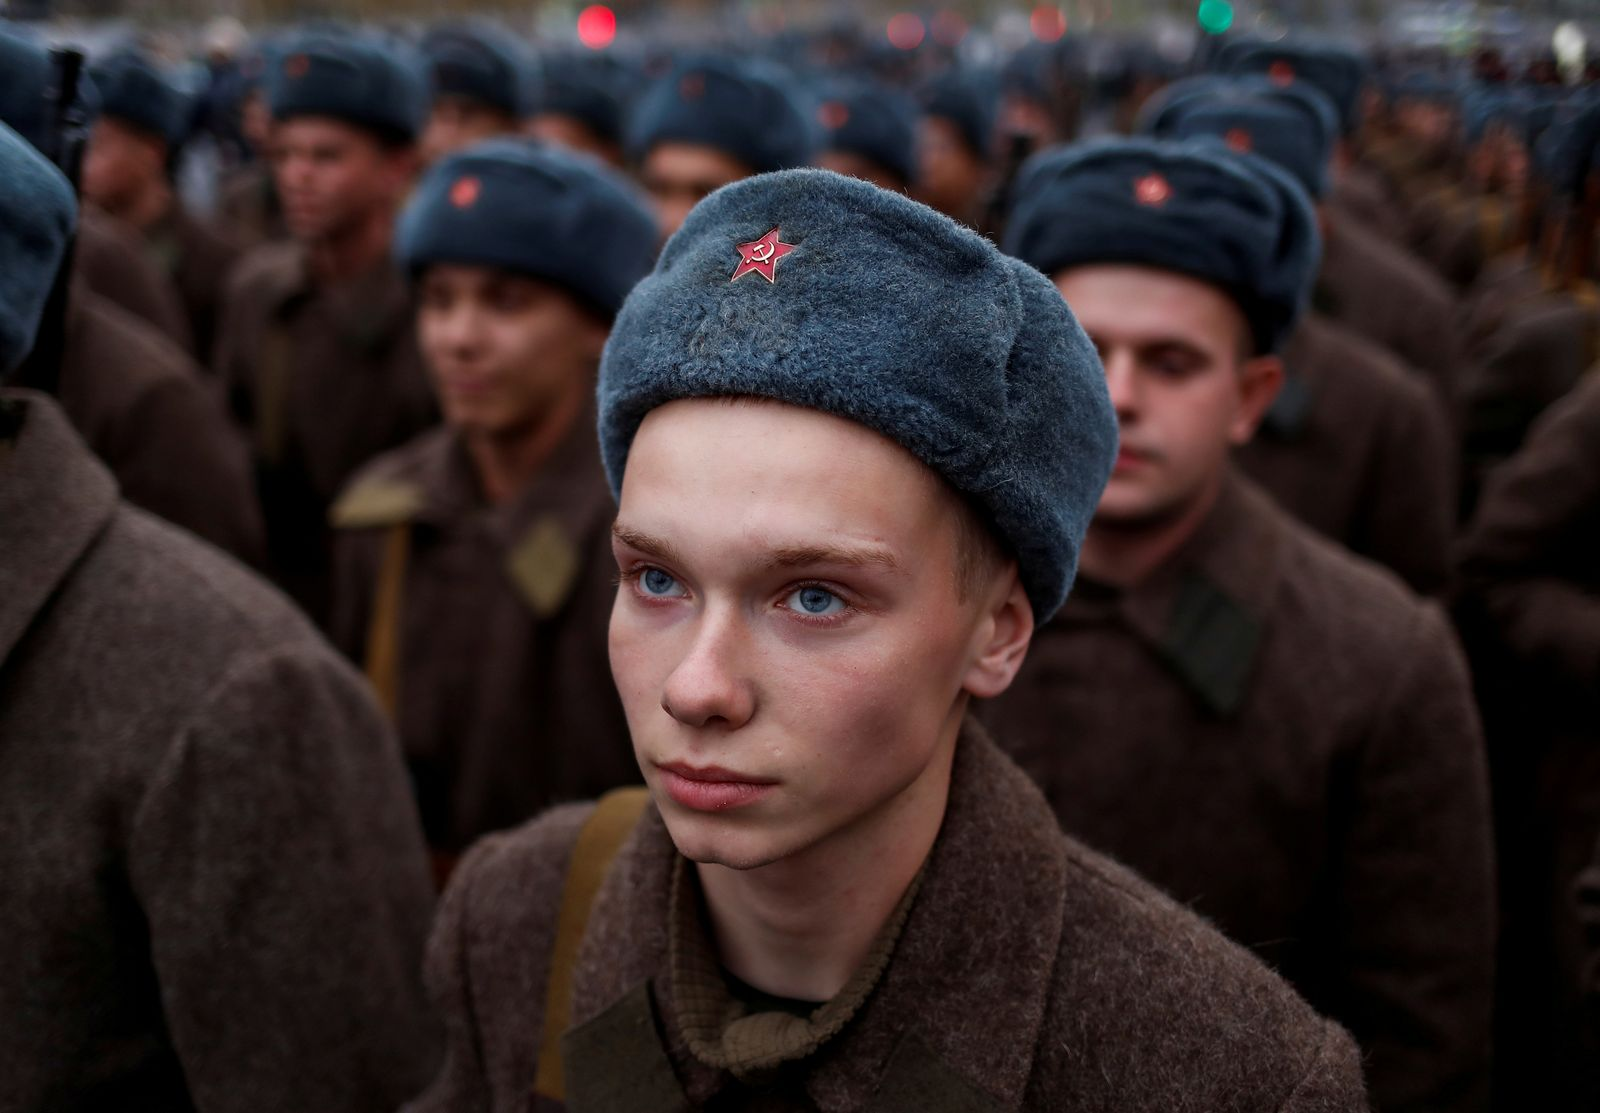 Russian Army member, dressed in historical uniform, looks on before a rehearsal for a military parade to mark the anniversary of a historical parade in 1941, when Soviet soldiers marched towards the front lines, at the Red Square in Moscow